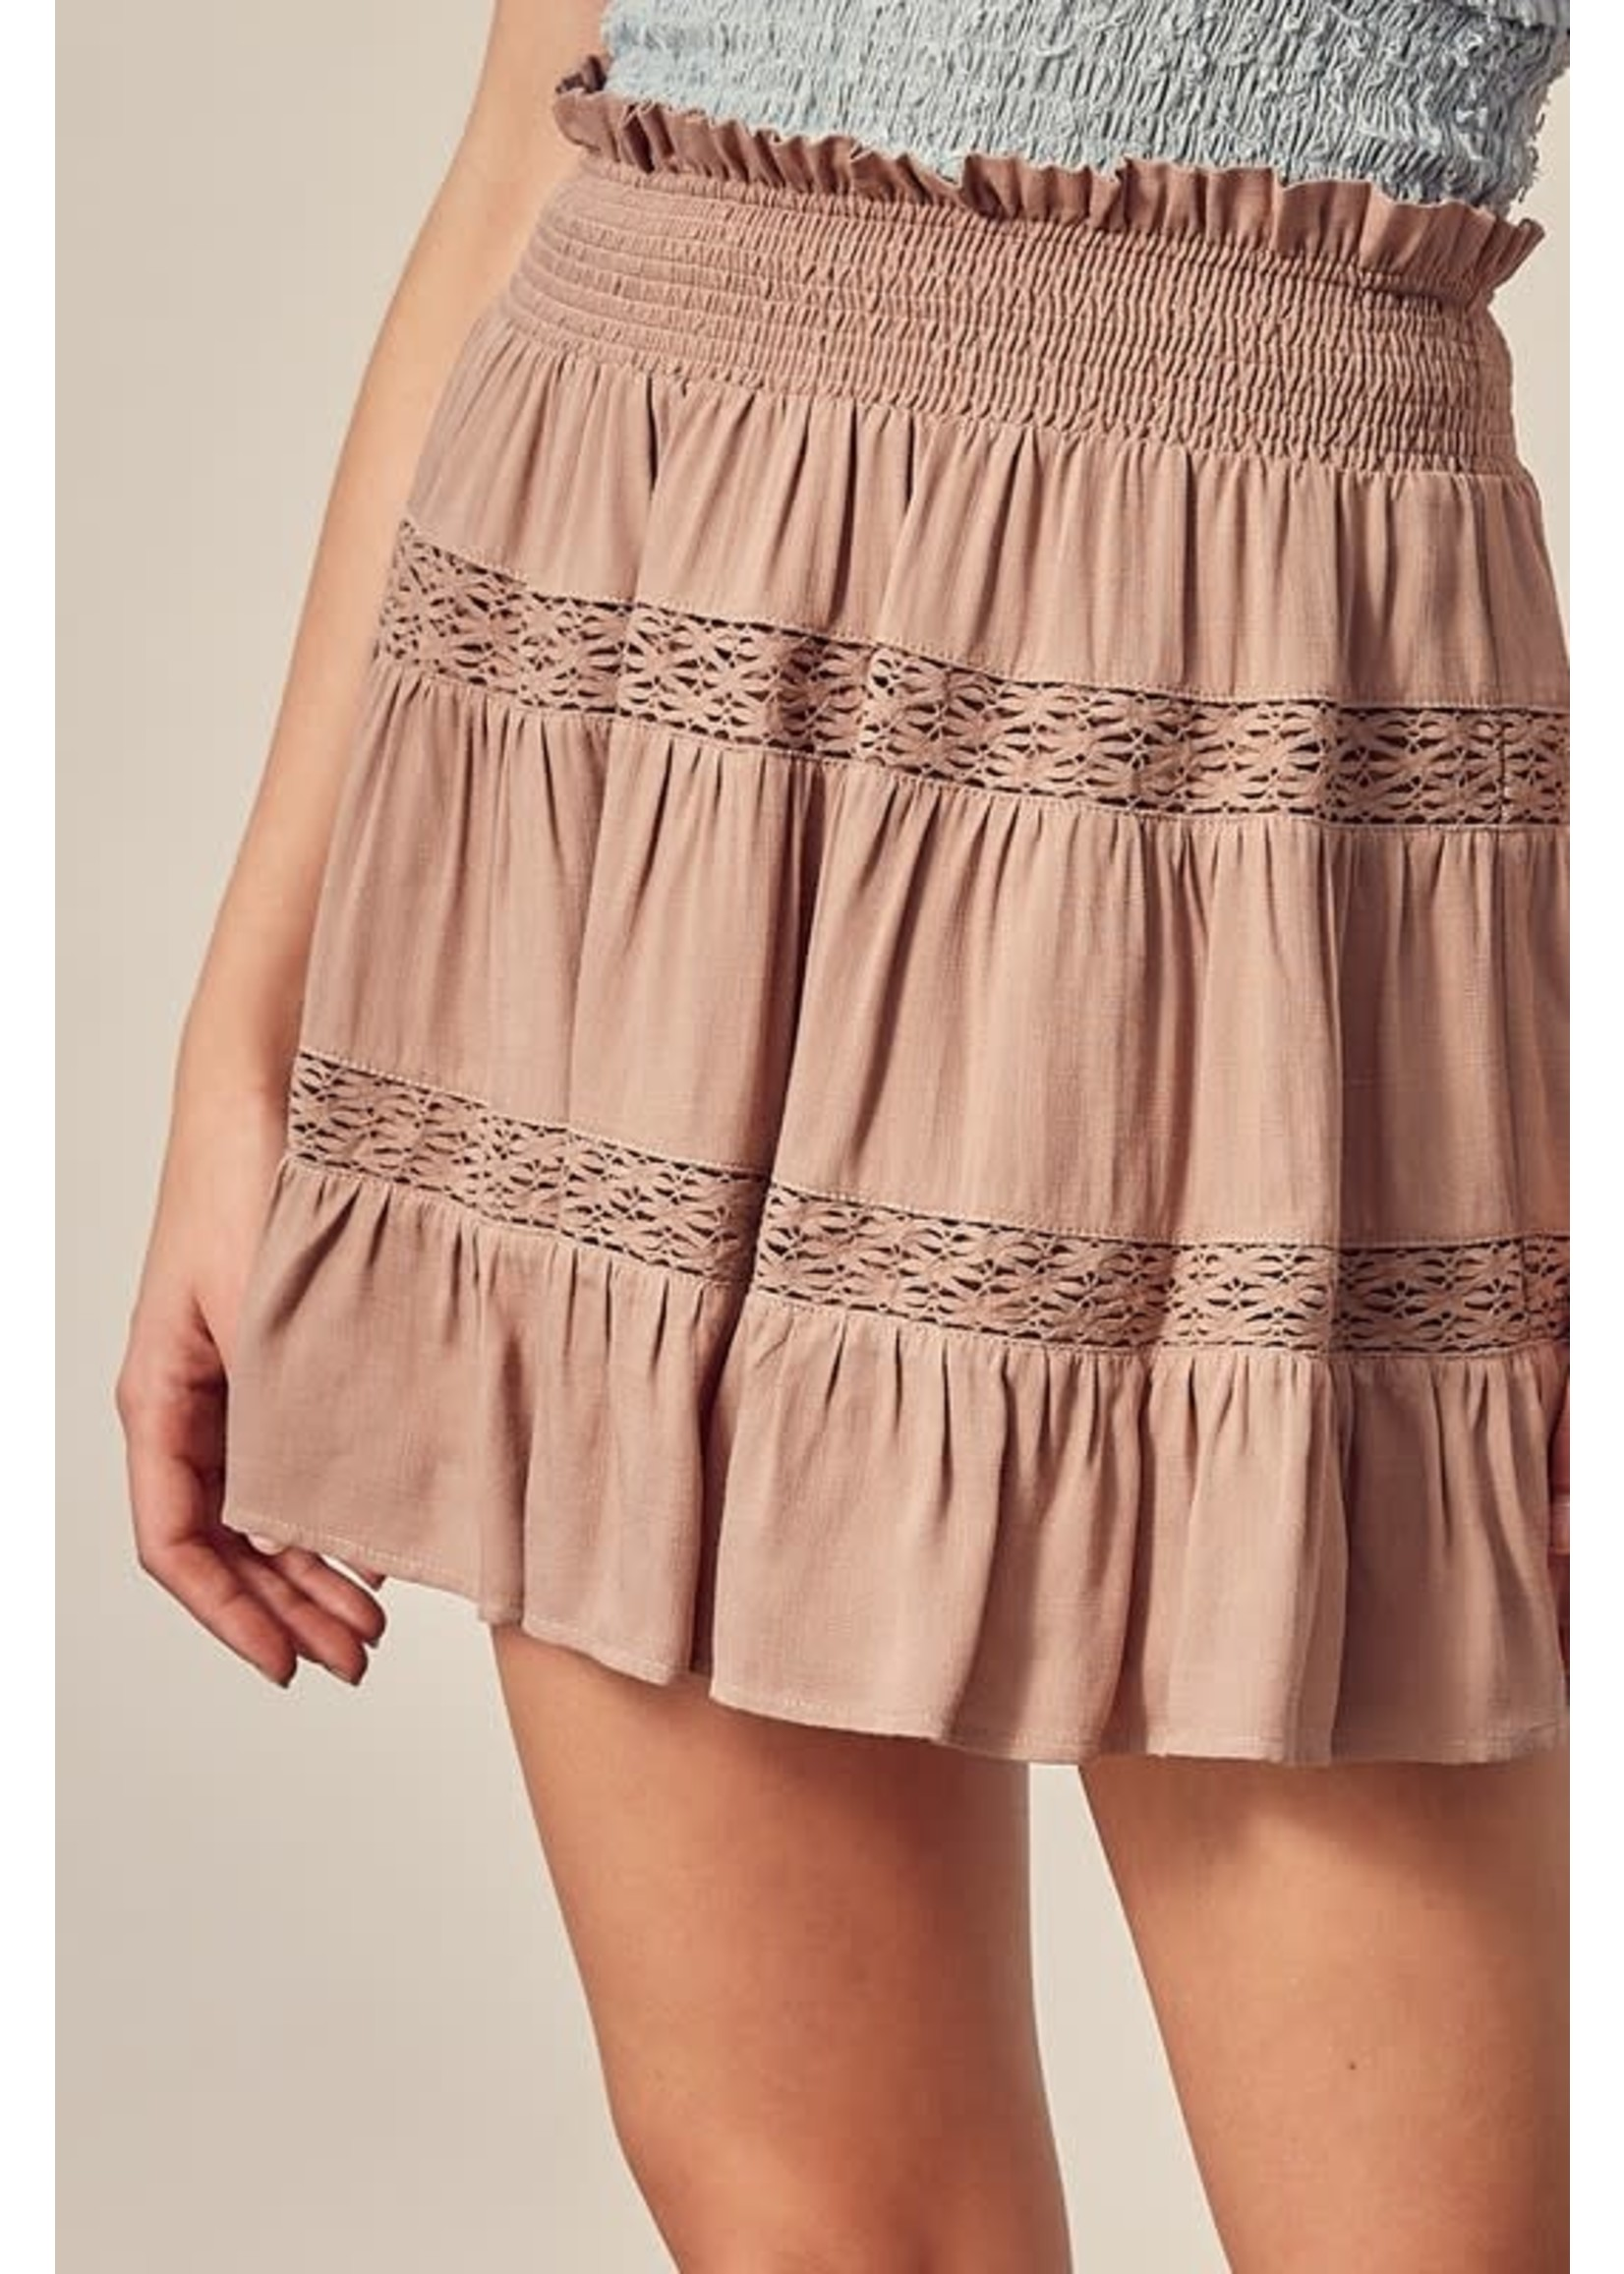 Mustard Seed Lace Detail Skirt - S18101